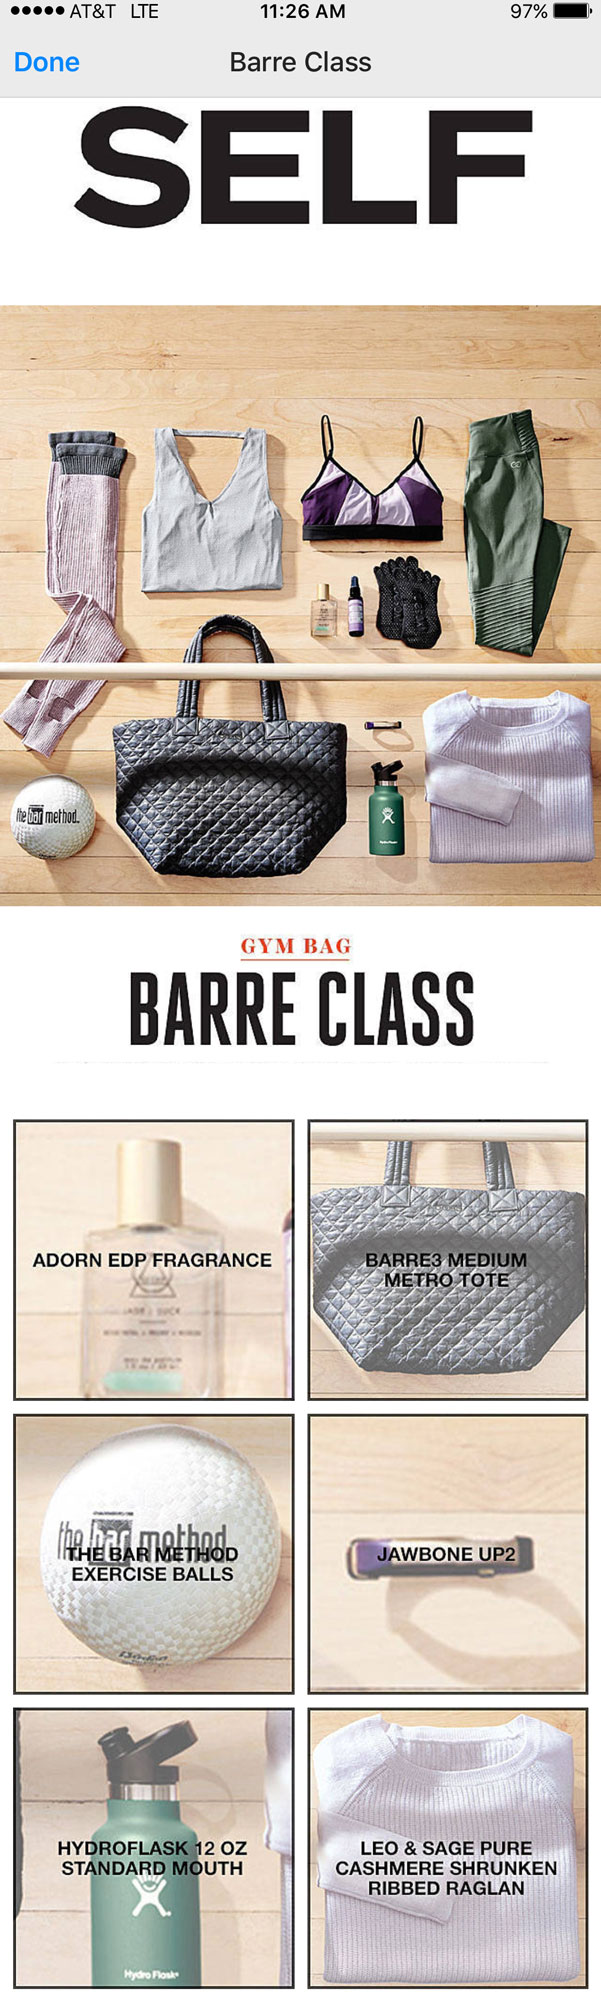 Gym Bag Barre Class